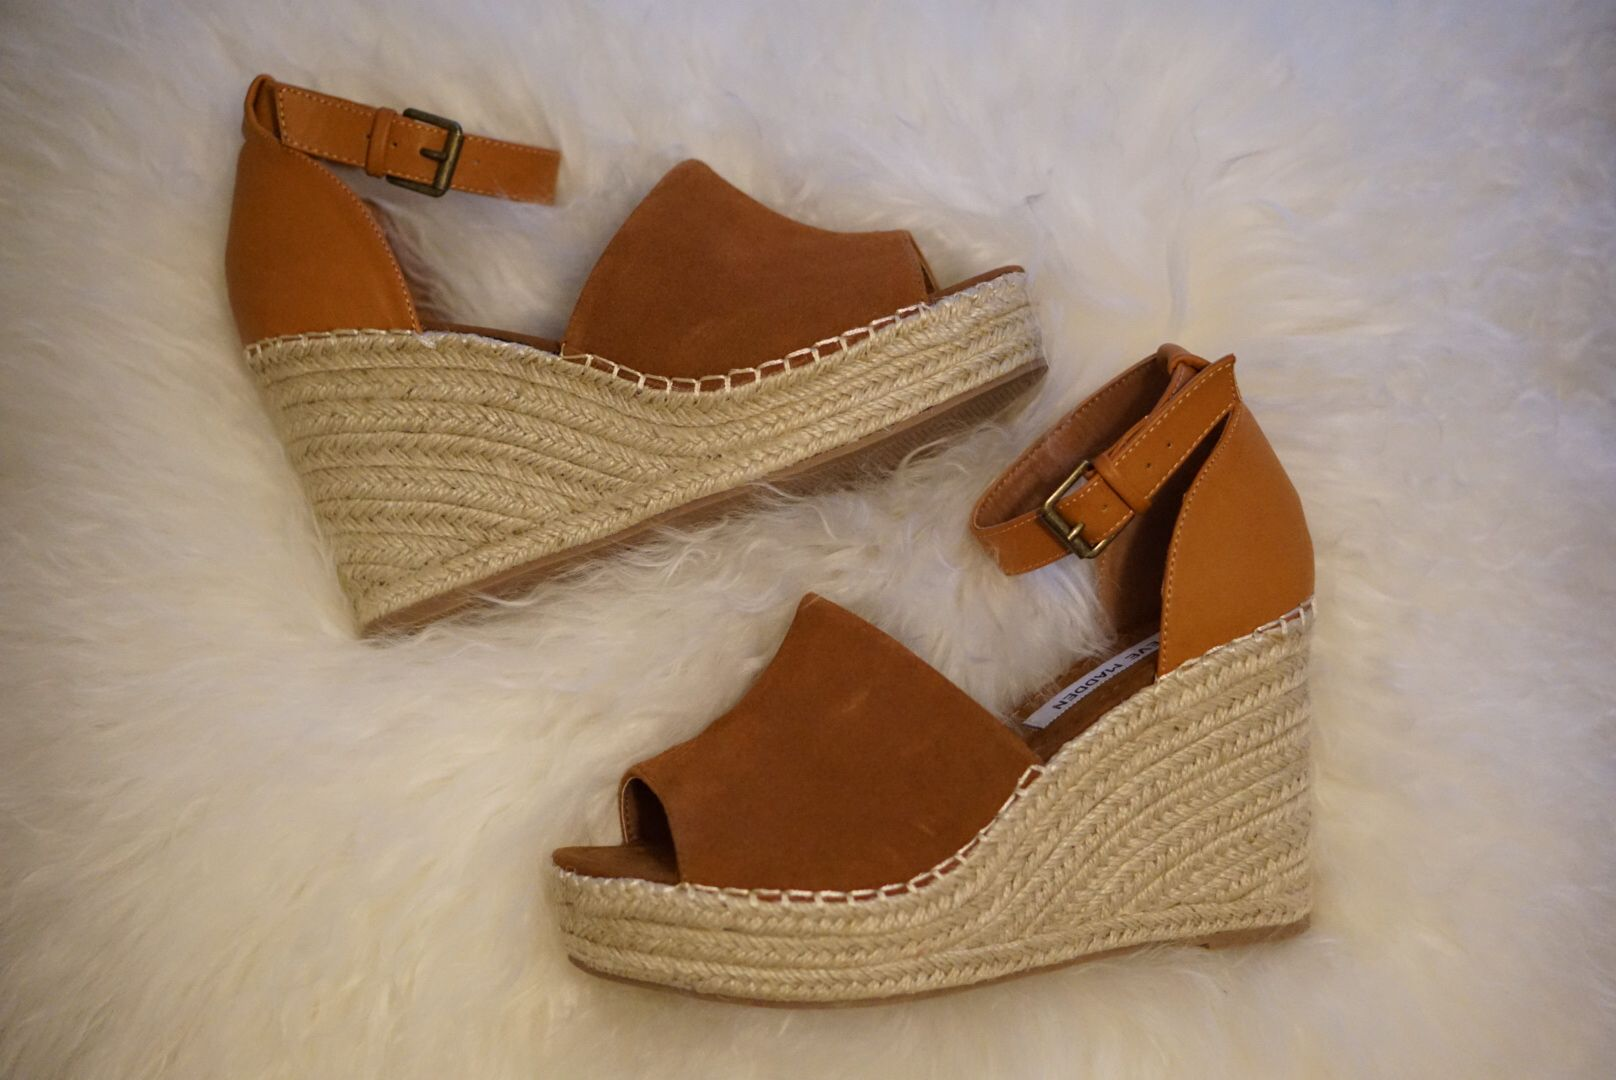 """Y'all, I found the perfect dupe of a dupe  These beauties are a dupe of the Marc Fisher espadrilles that everyone is loving and those are a dupe of the Chloe ones! They come in 3 different colors, brown, taupe, and black and are less than $60  It doesn't get any better than that. Go grab these beauties fast before they sell out! All details linked via @liketoknow.it or on my blog in the """"shop the feed"""" section http://liketk.it/2qynj #liketkit"""